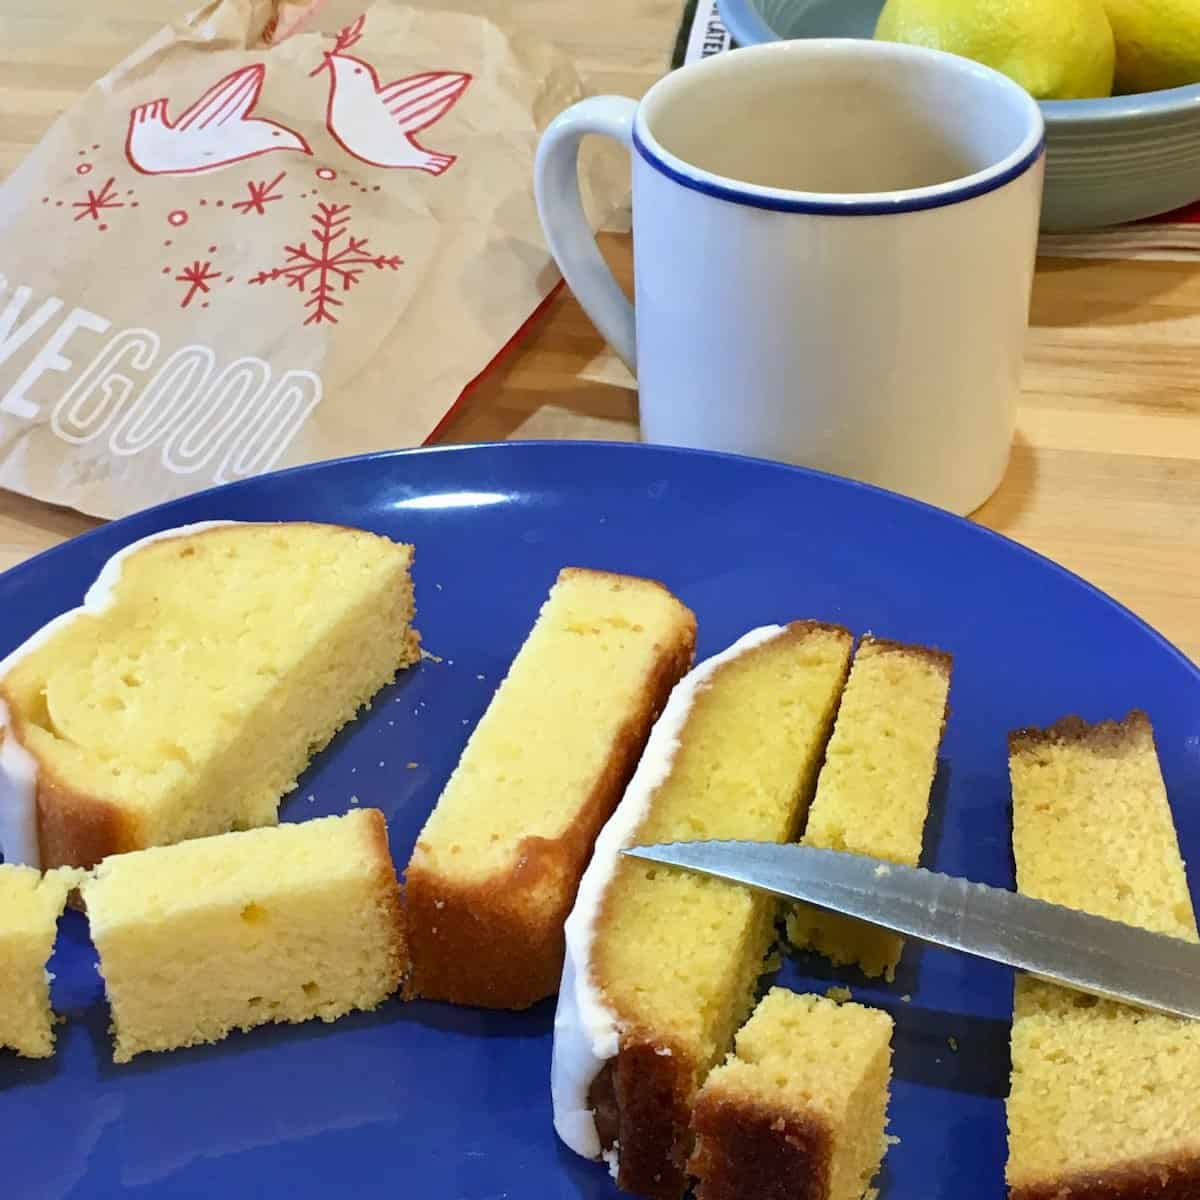 pieces of lemon cake on blue plate